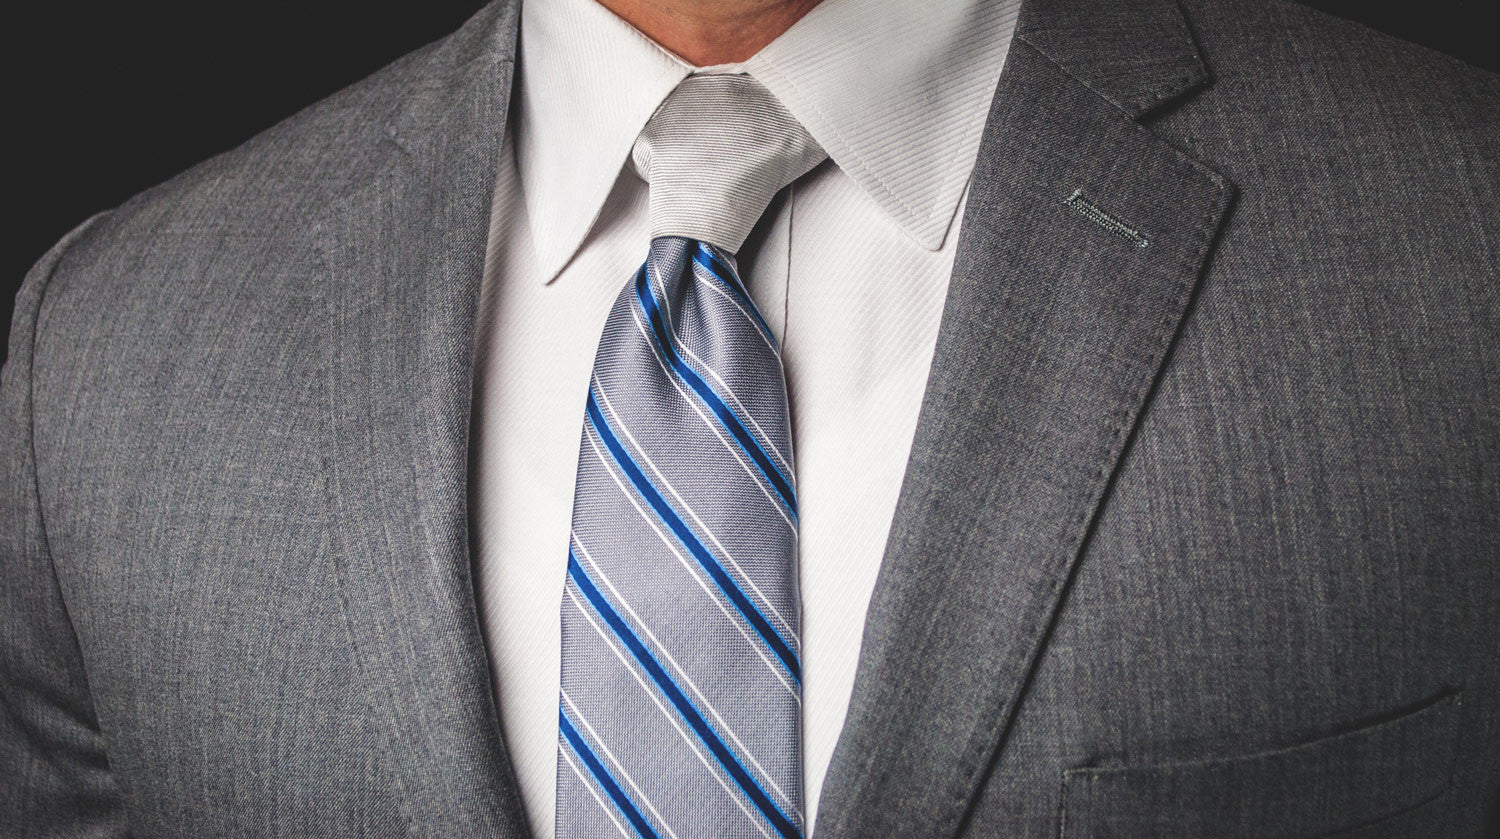 The Grey Proper Knot™